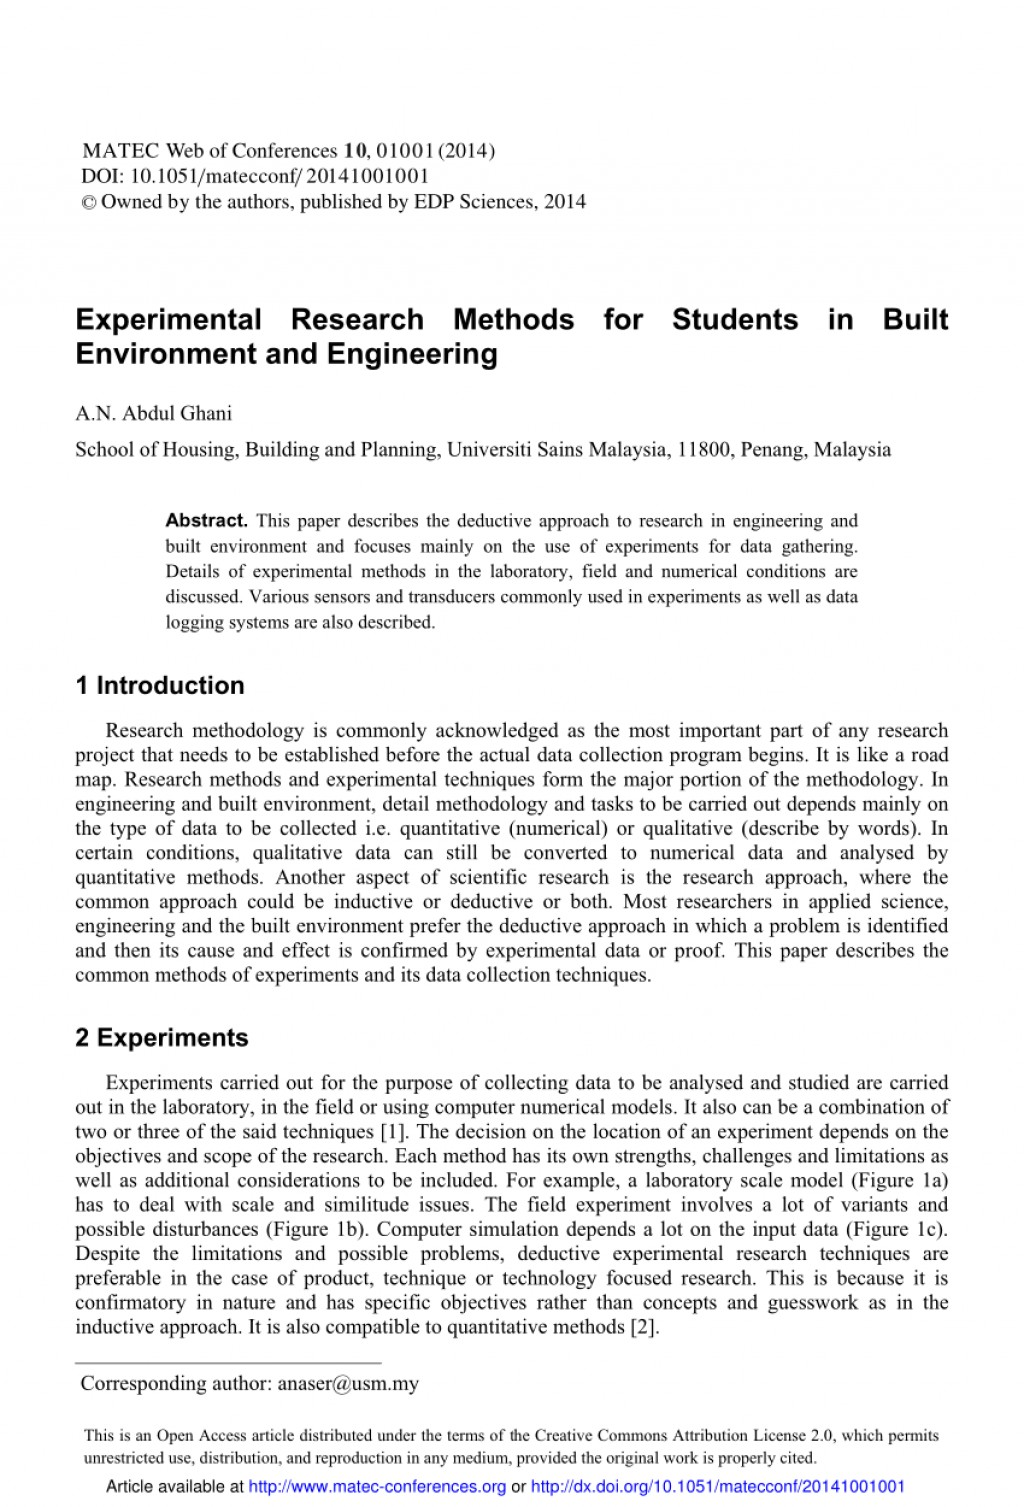 005 Experimental Method In Research Paper Rare Definition Ppt Educational Large